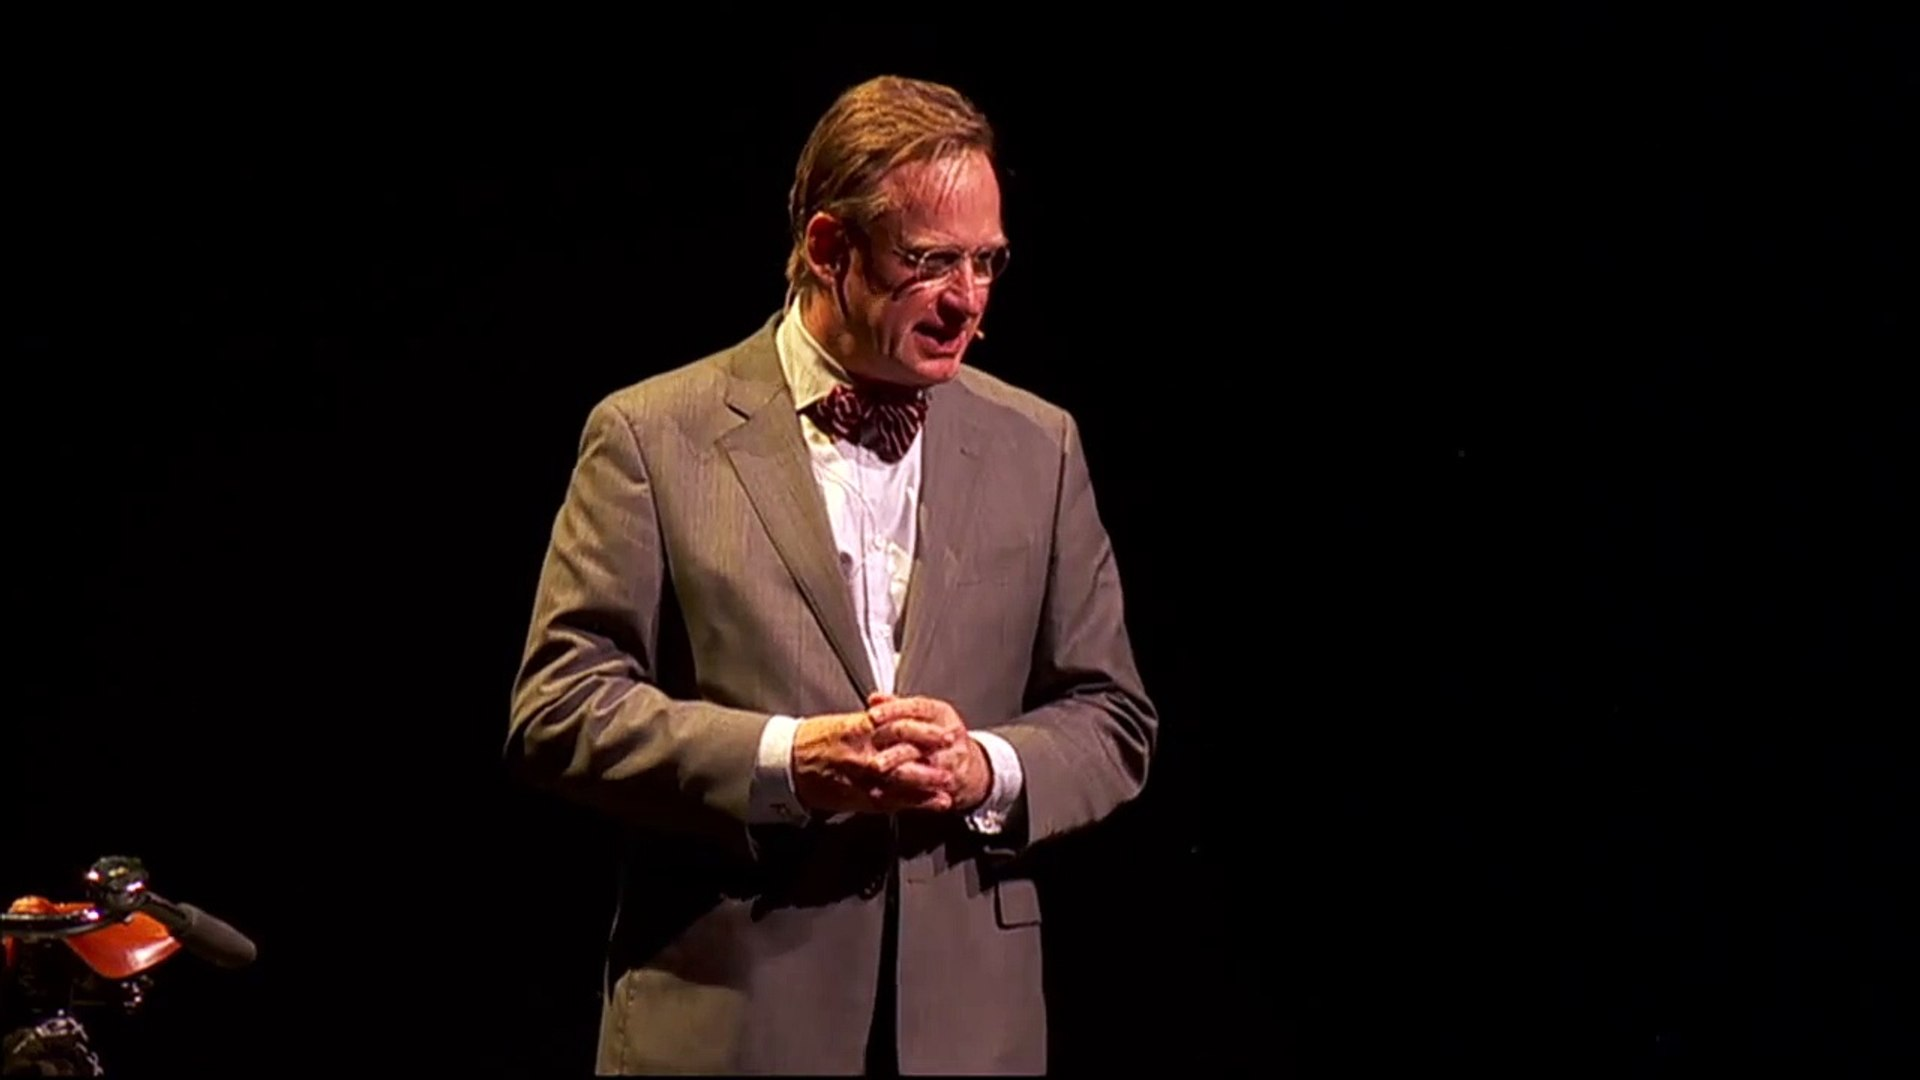 TEDxRotterdam - Jacob van der Groot - The downside of change